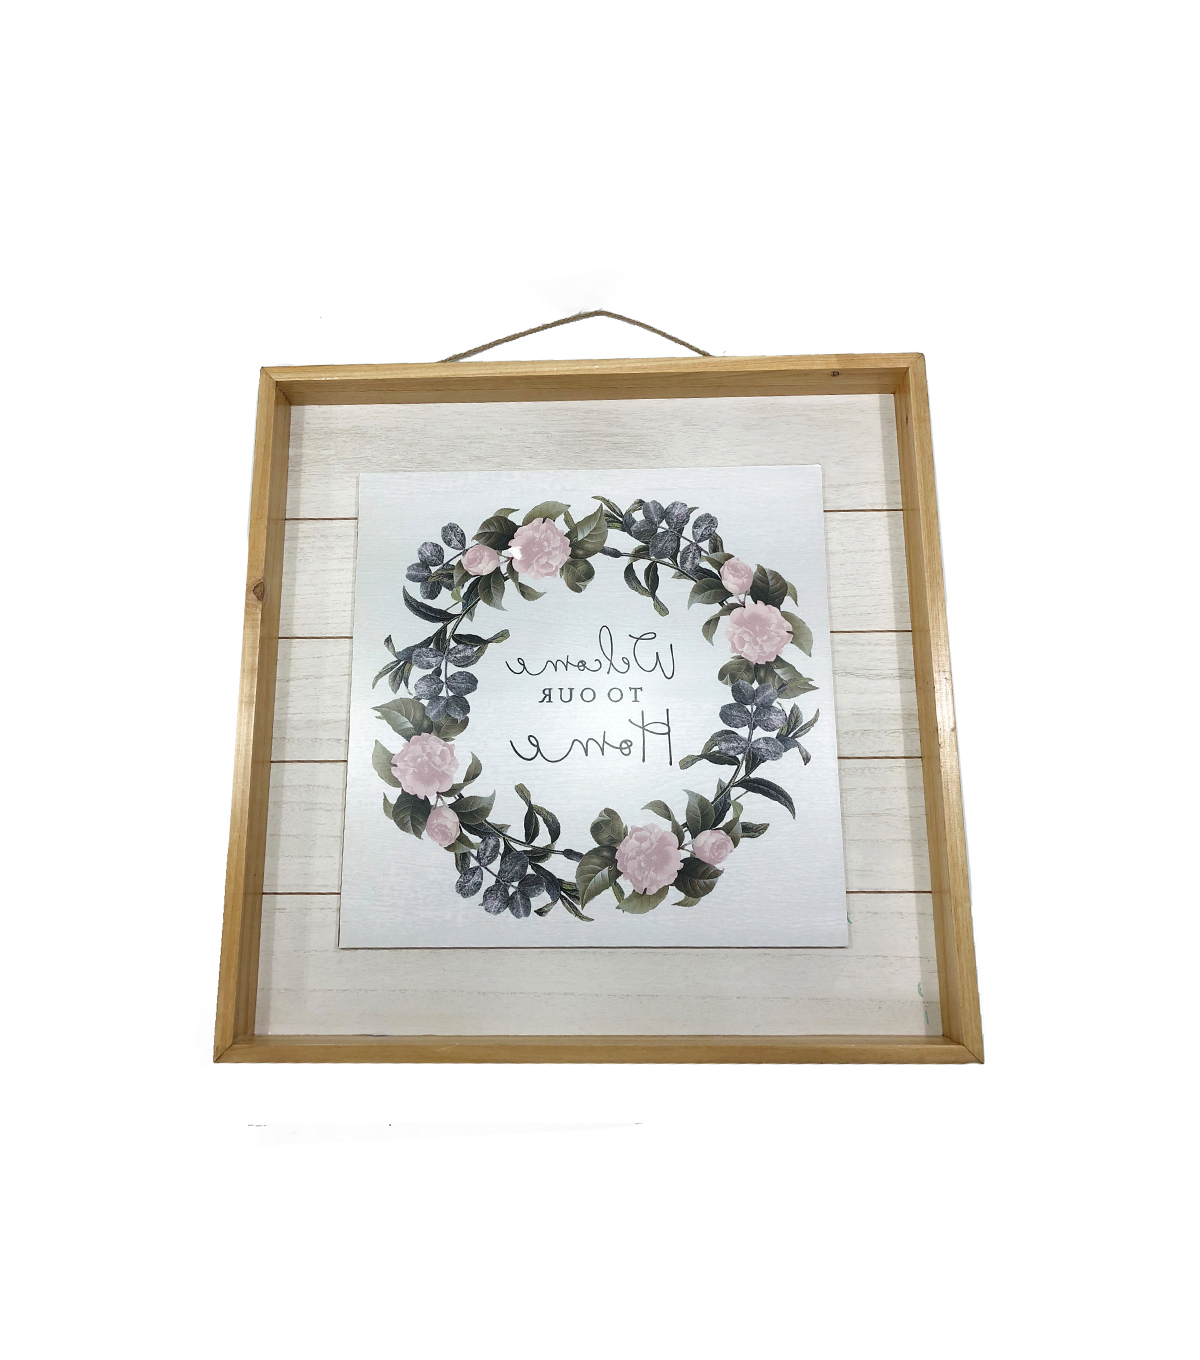 Most Recently Released Floral Wreath Wood Framed Wall Decor Throughout Simply Spring Wall Decor Welcome To Our Home & Wreath (View 12 of 20)